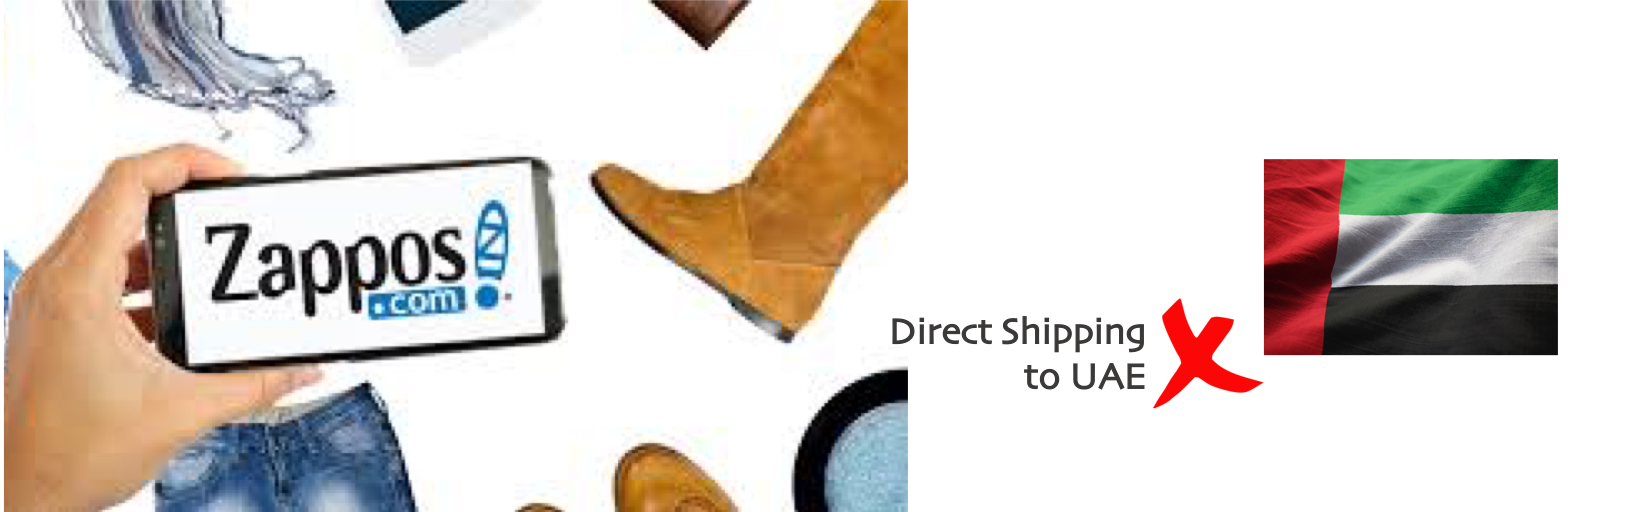 shop Zappos ship to uae